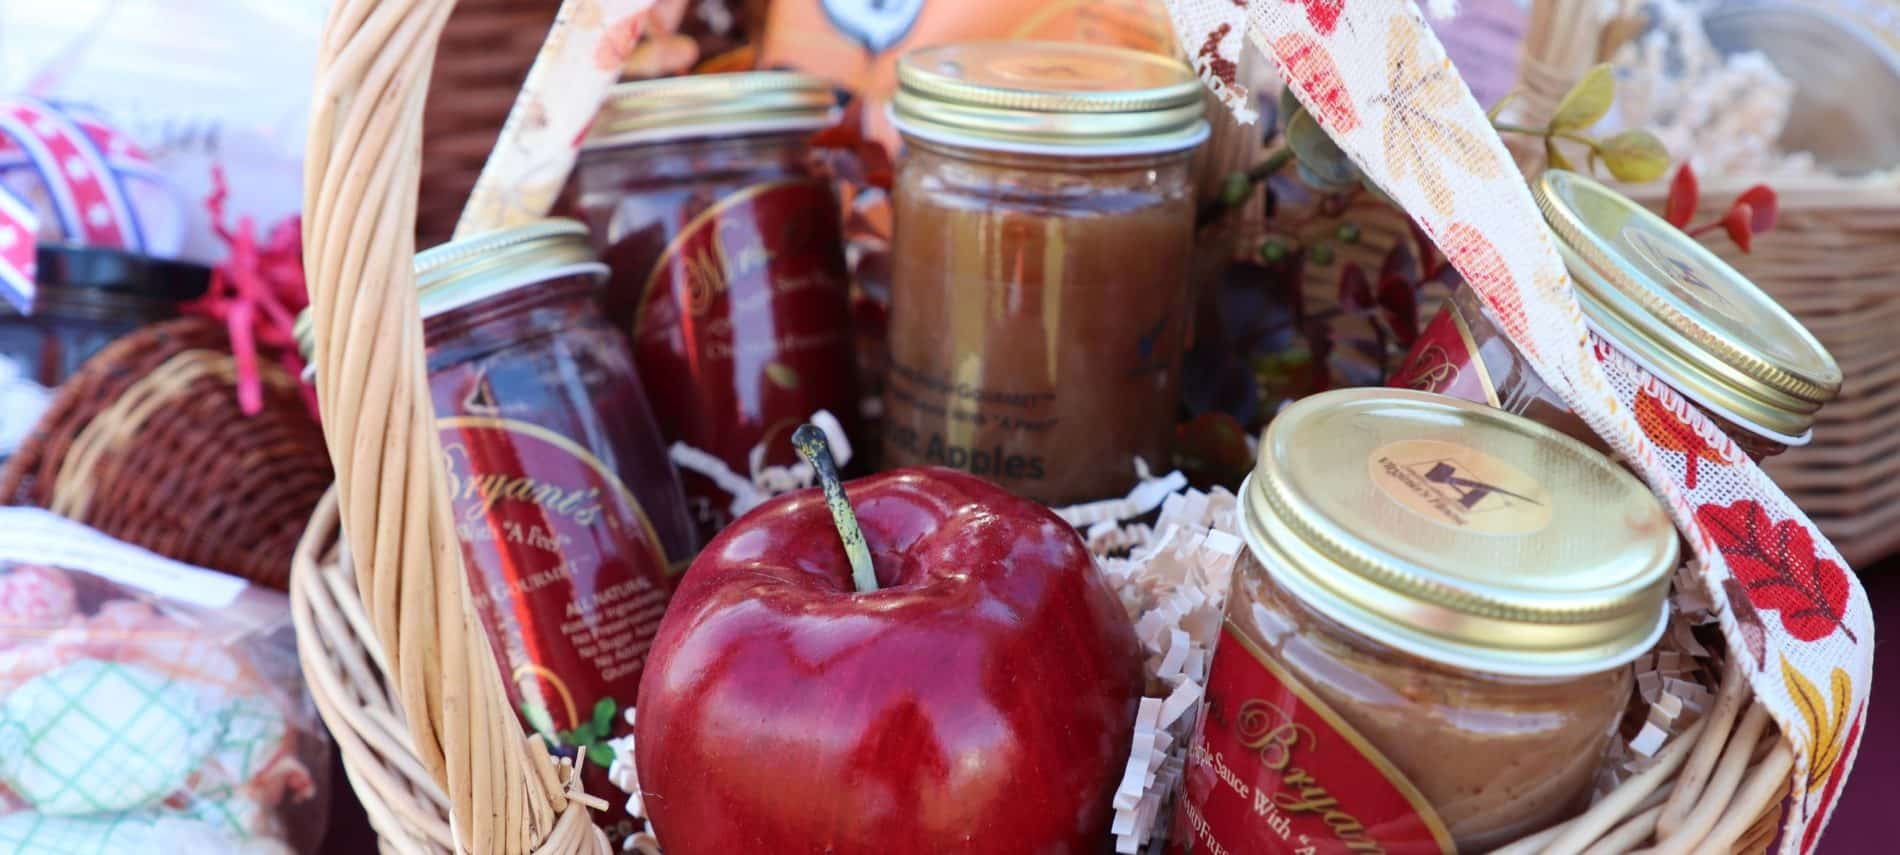 Basket full of red apples and fruit jams